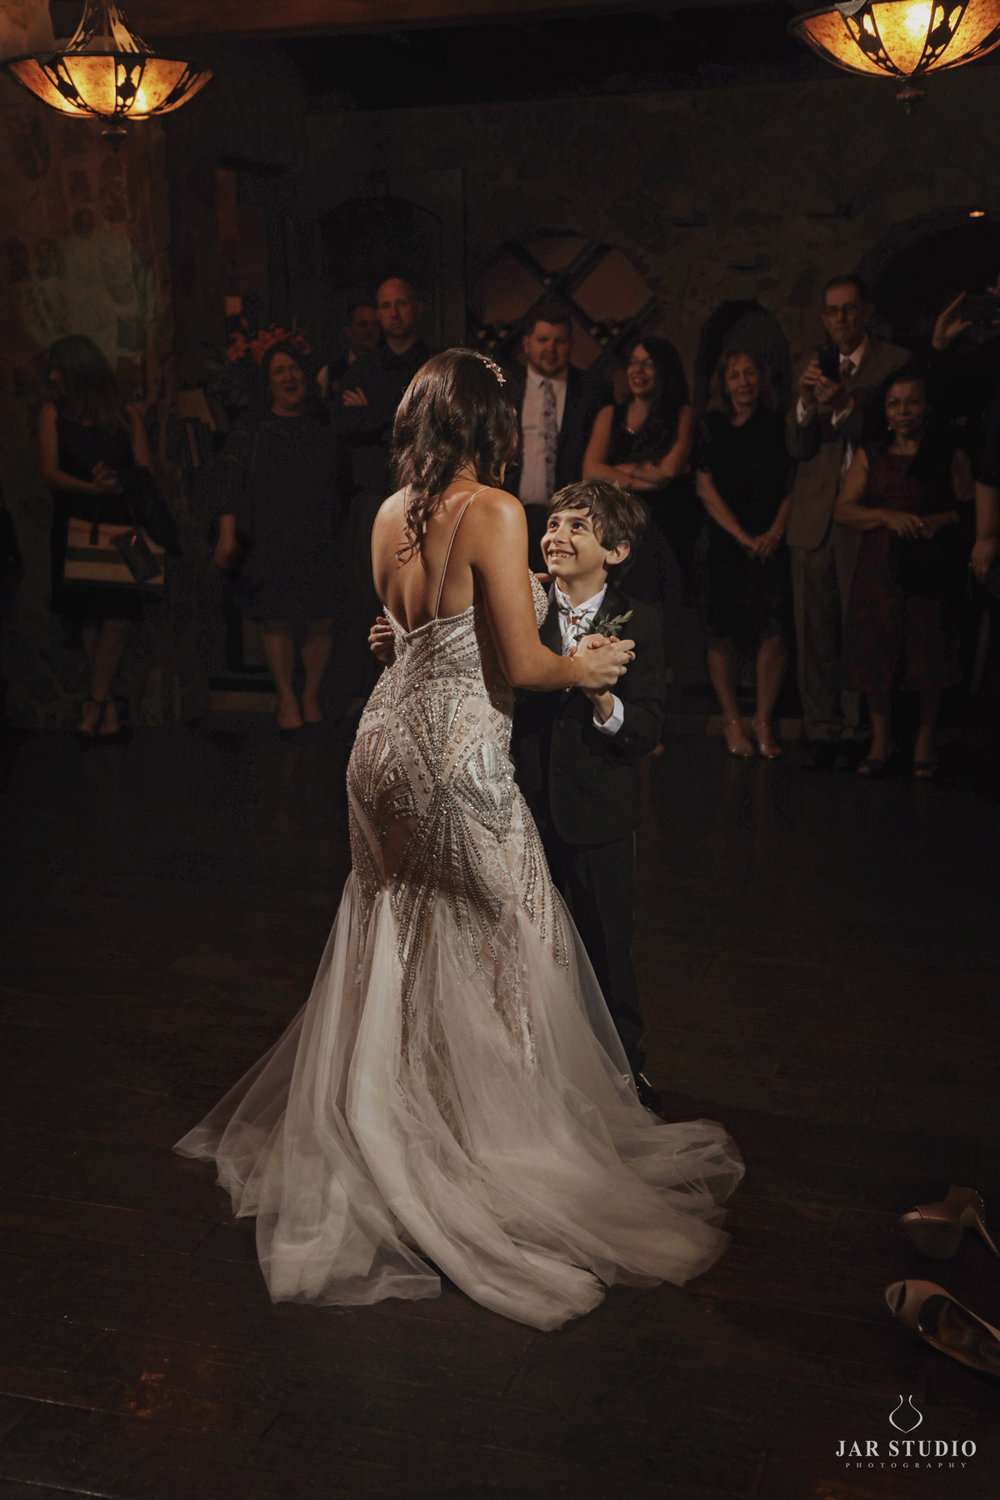 39-mother-son-cuttest-dance-wedding-photography-jarstudio.jpg